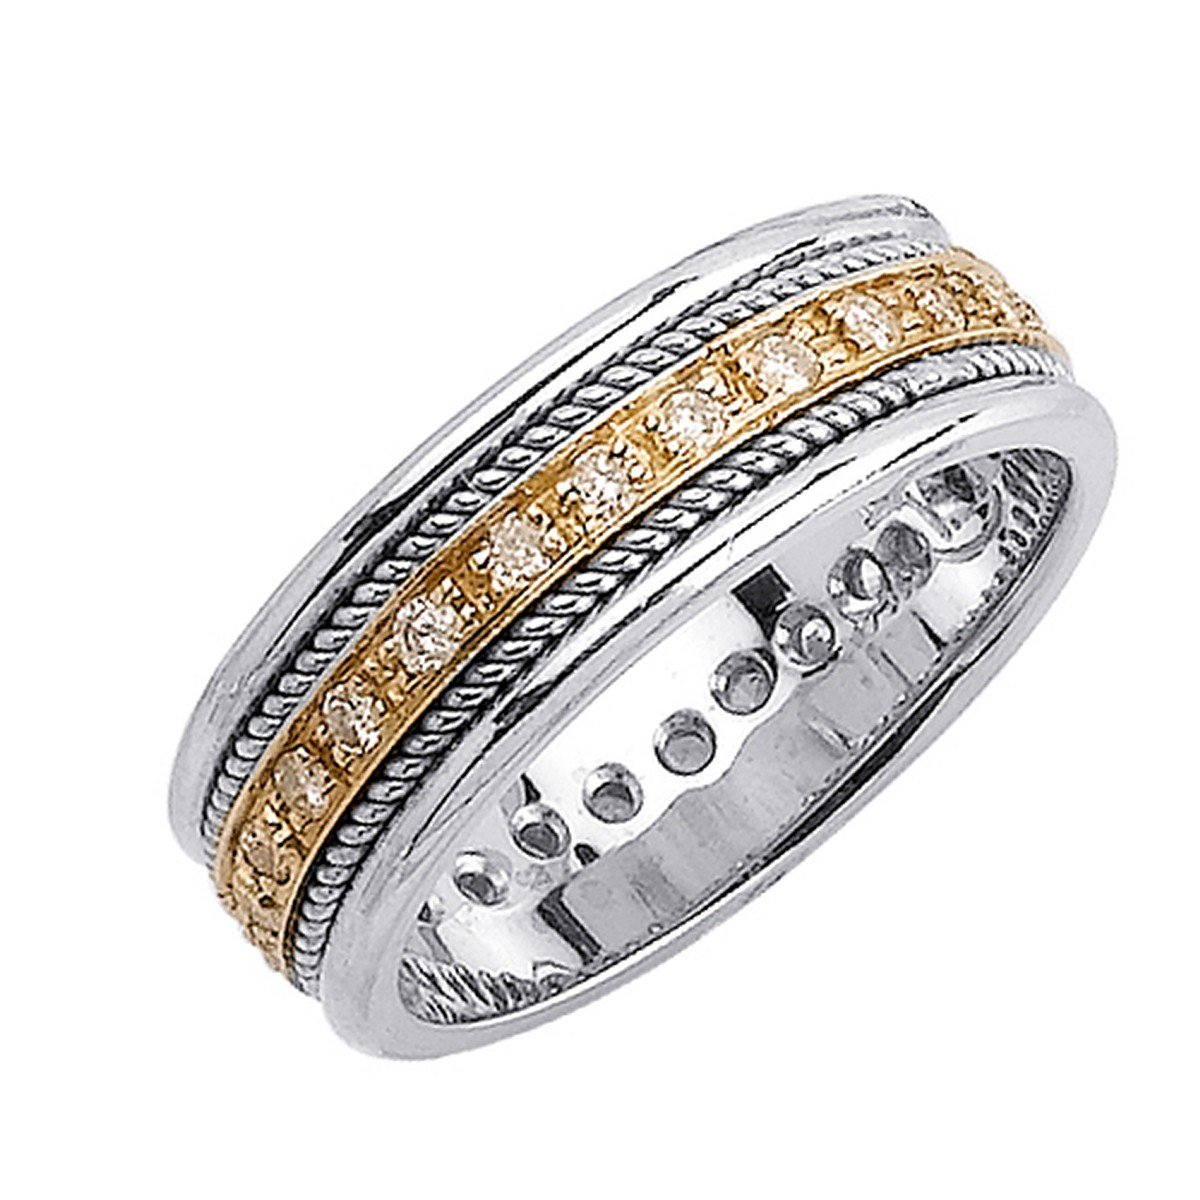 Men gold diamond wedding bands wedding and bridal for Diamond mens wedding bands